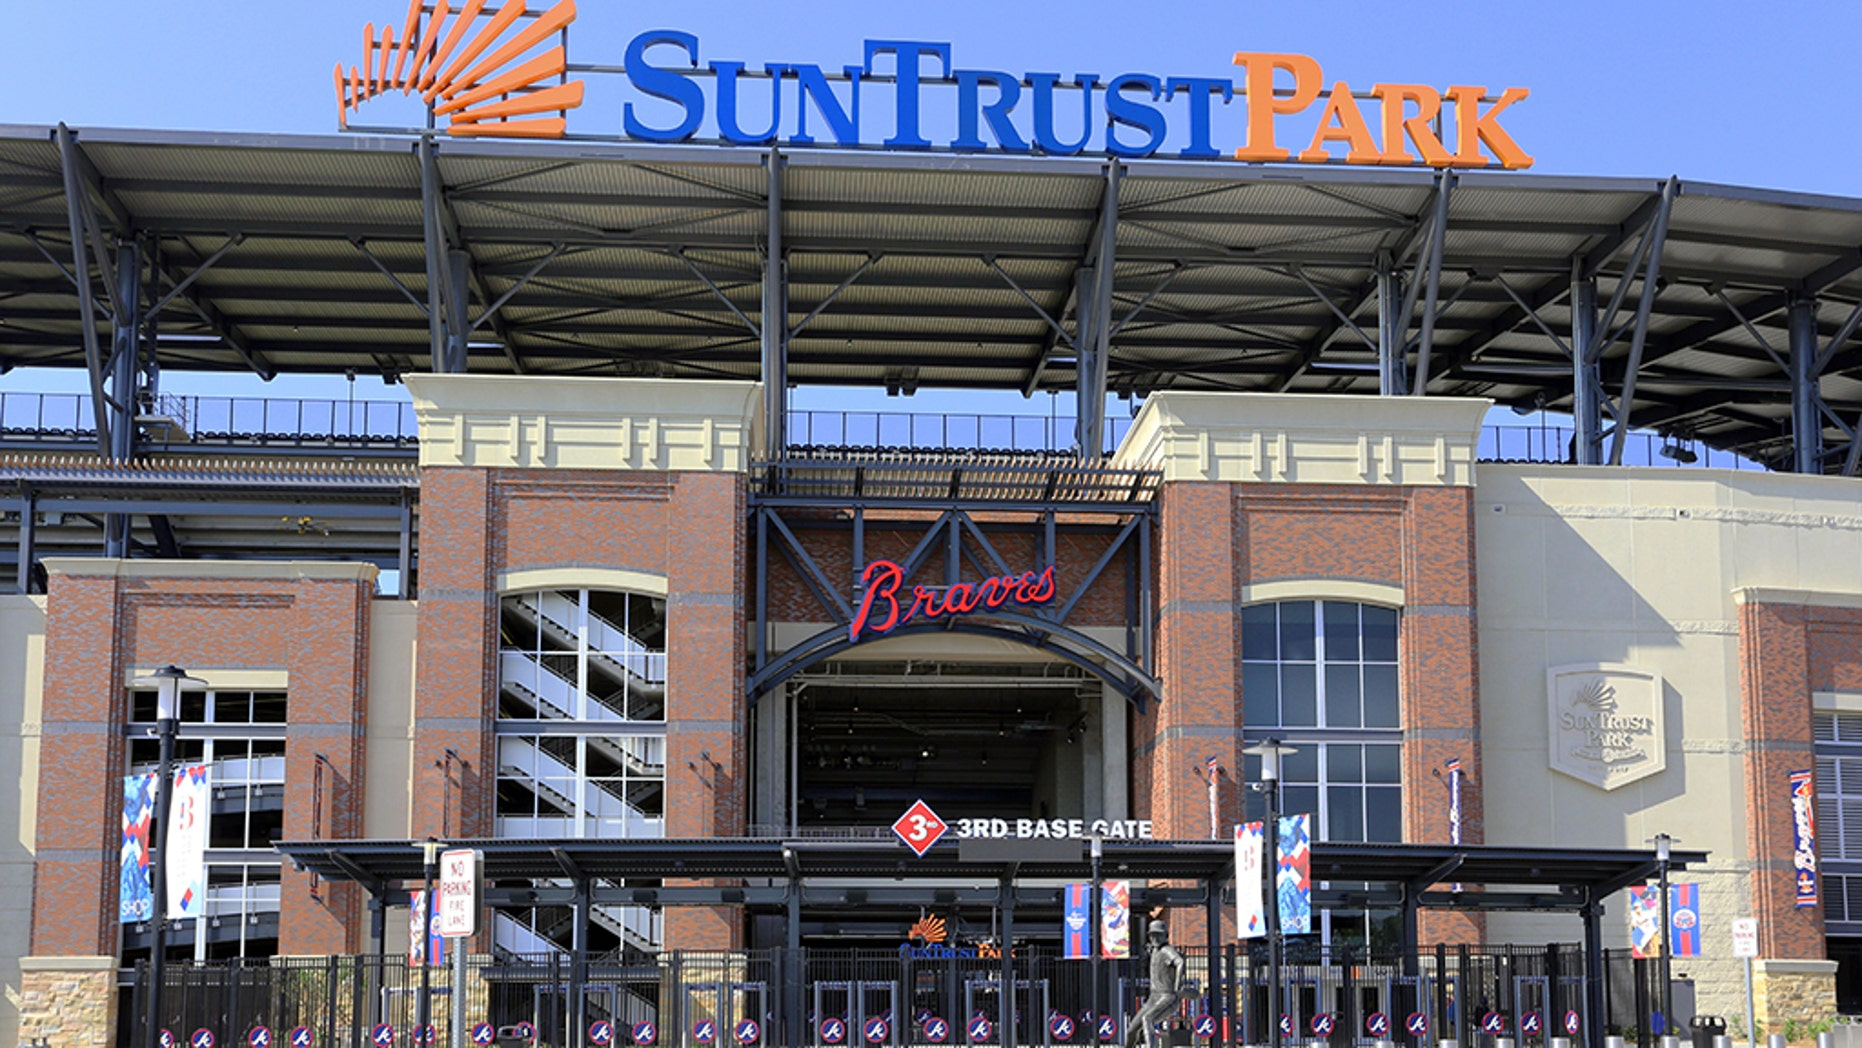 The man found dead inside a walk-in beer cooler at SunTrust Park in Atlanta has been identified, police said.